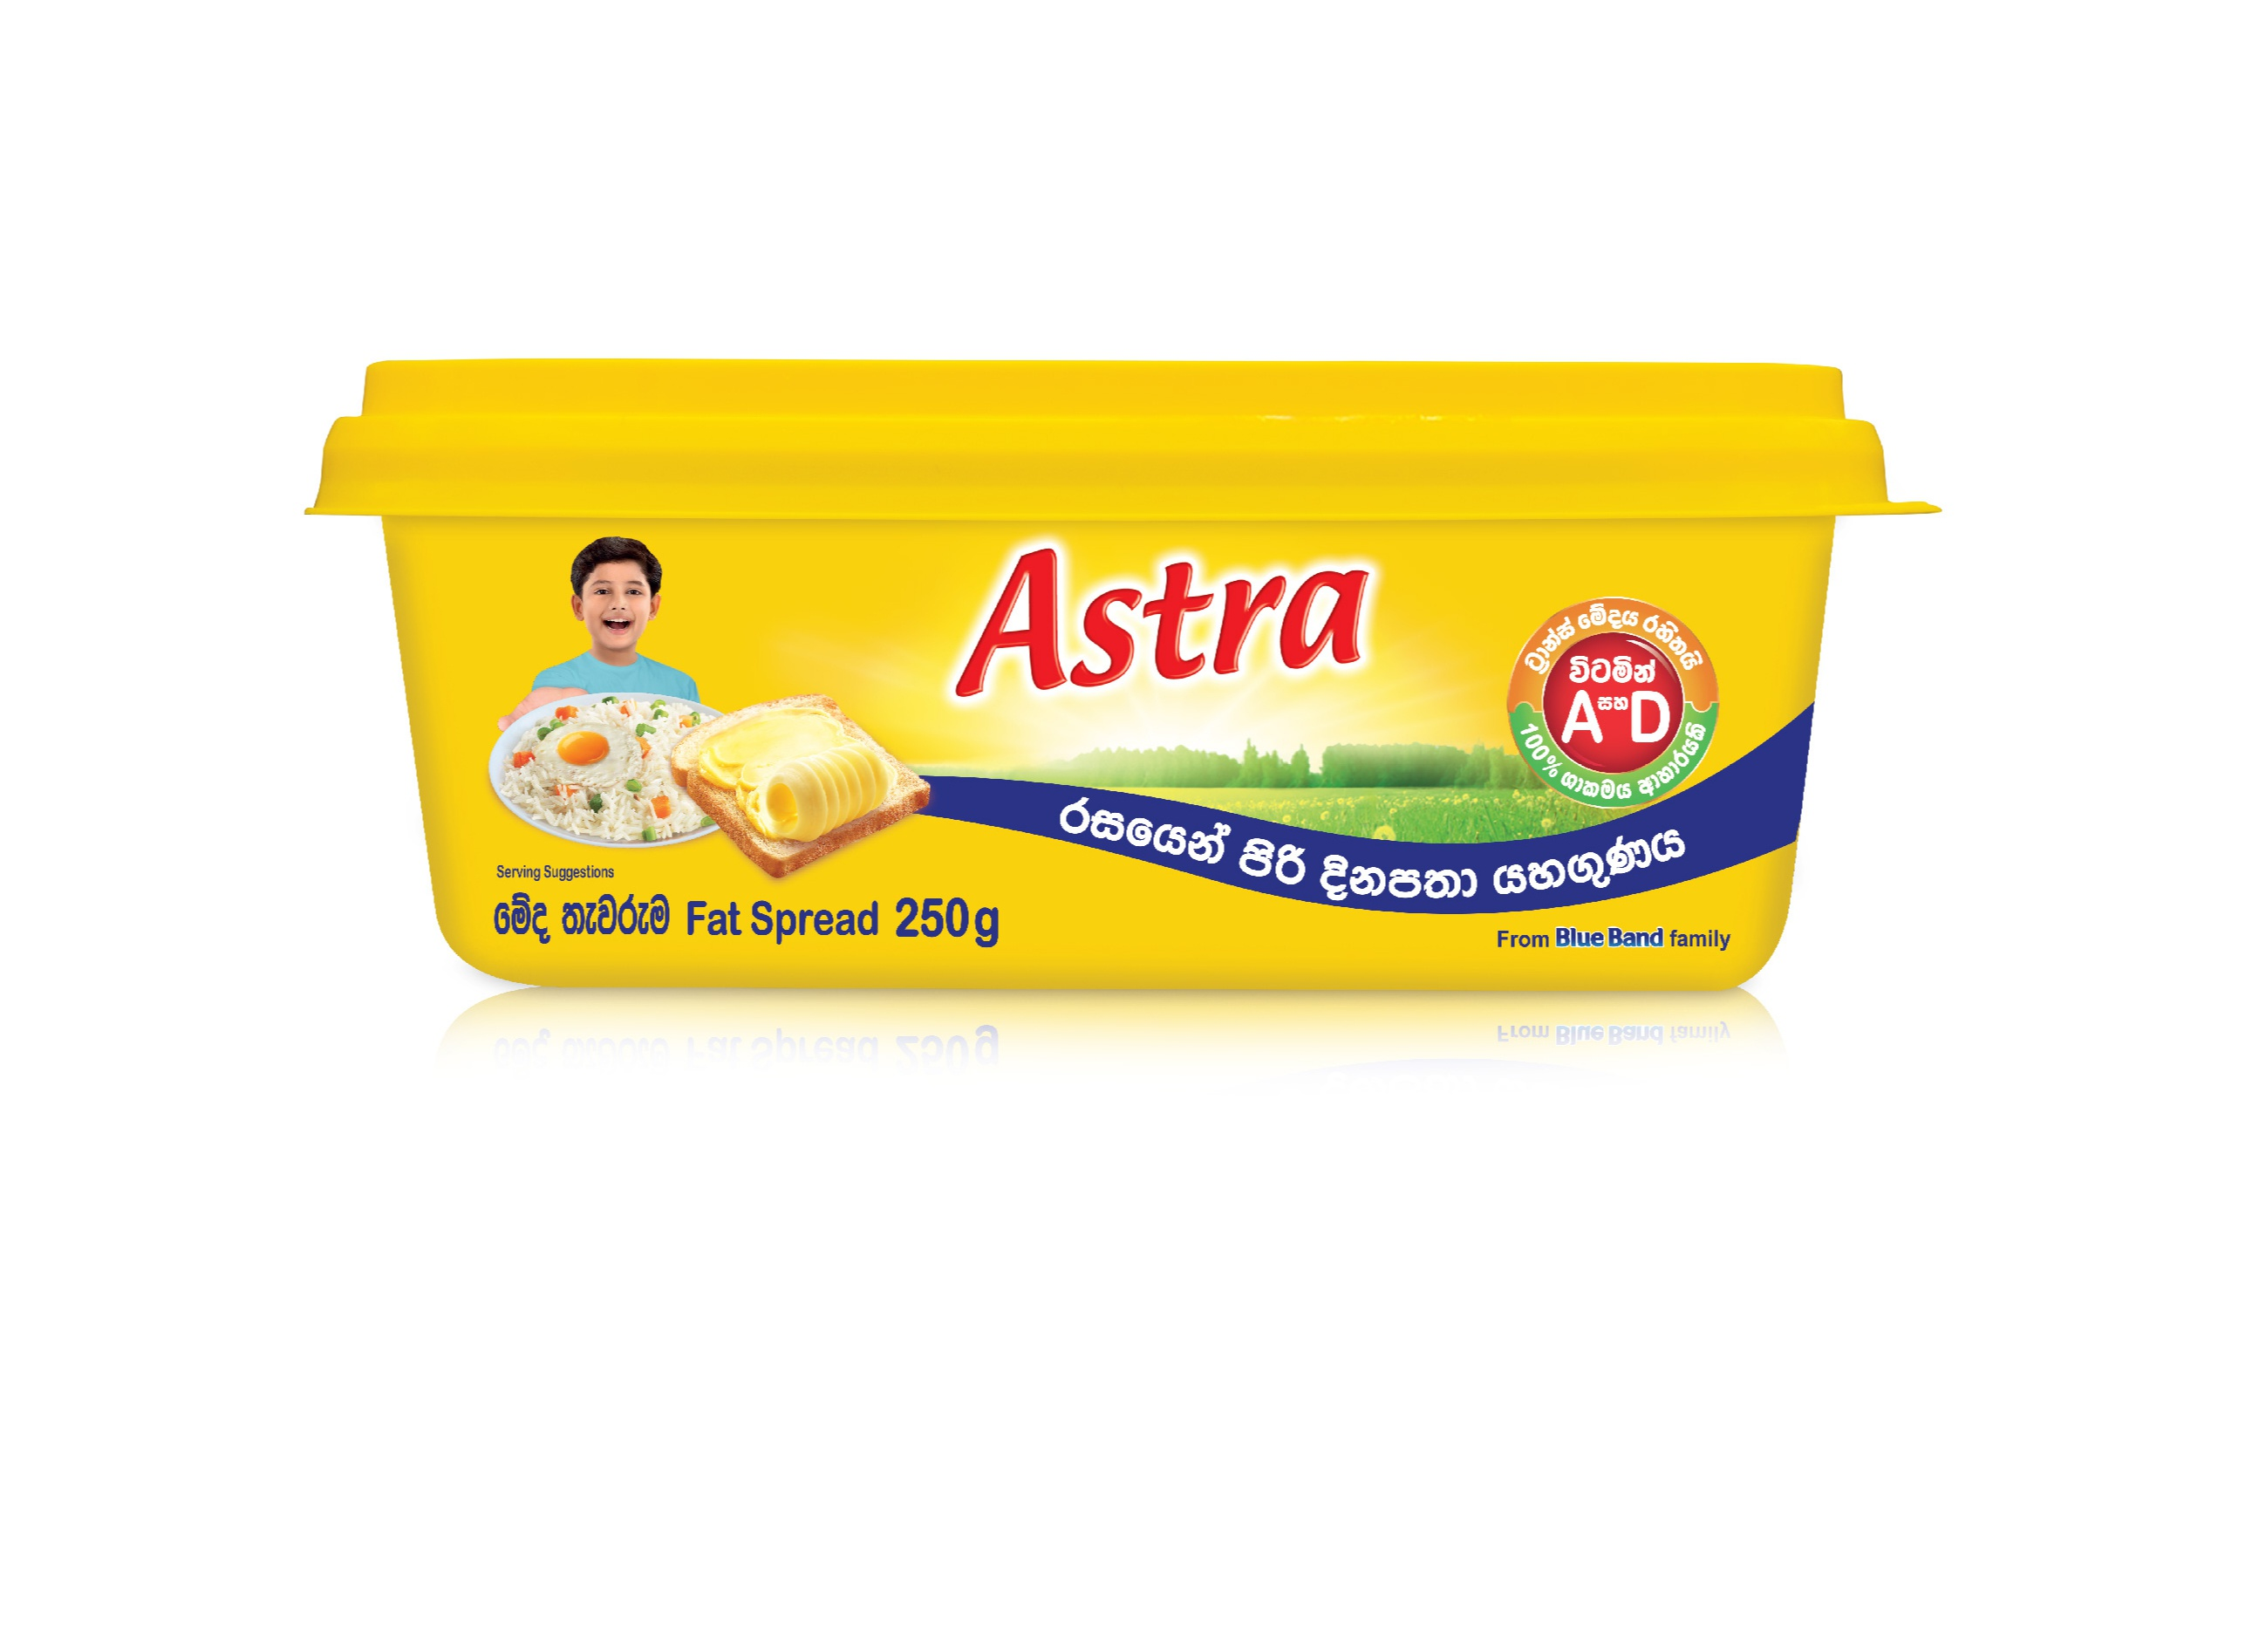 Astra Fat Spread 250G - ASTRA - Spreads - in Sri Lanka